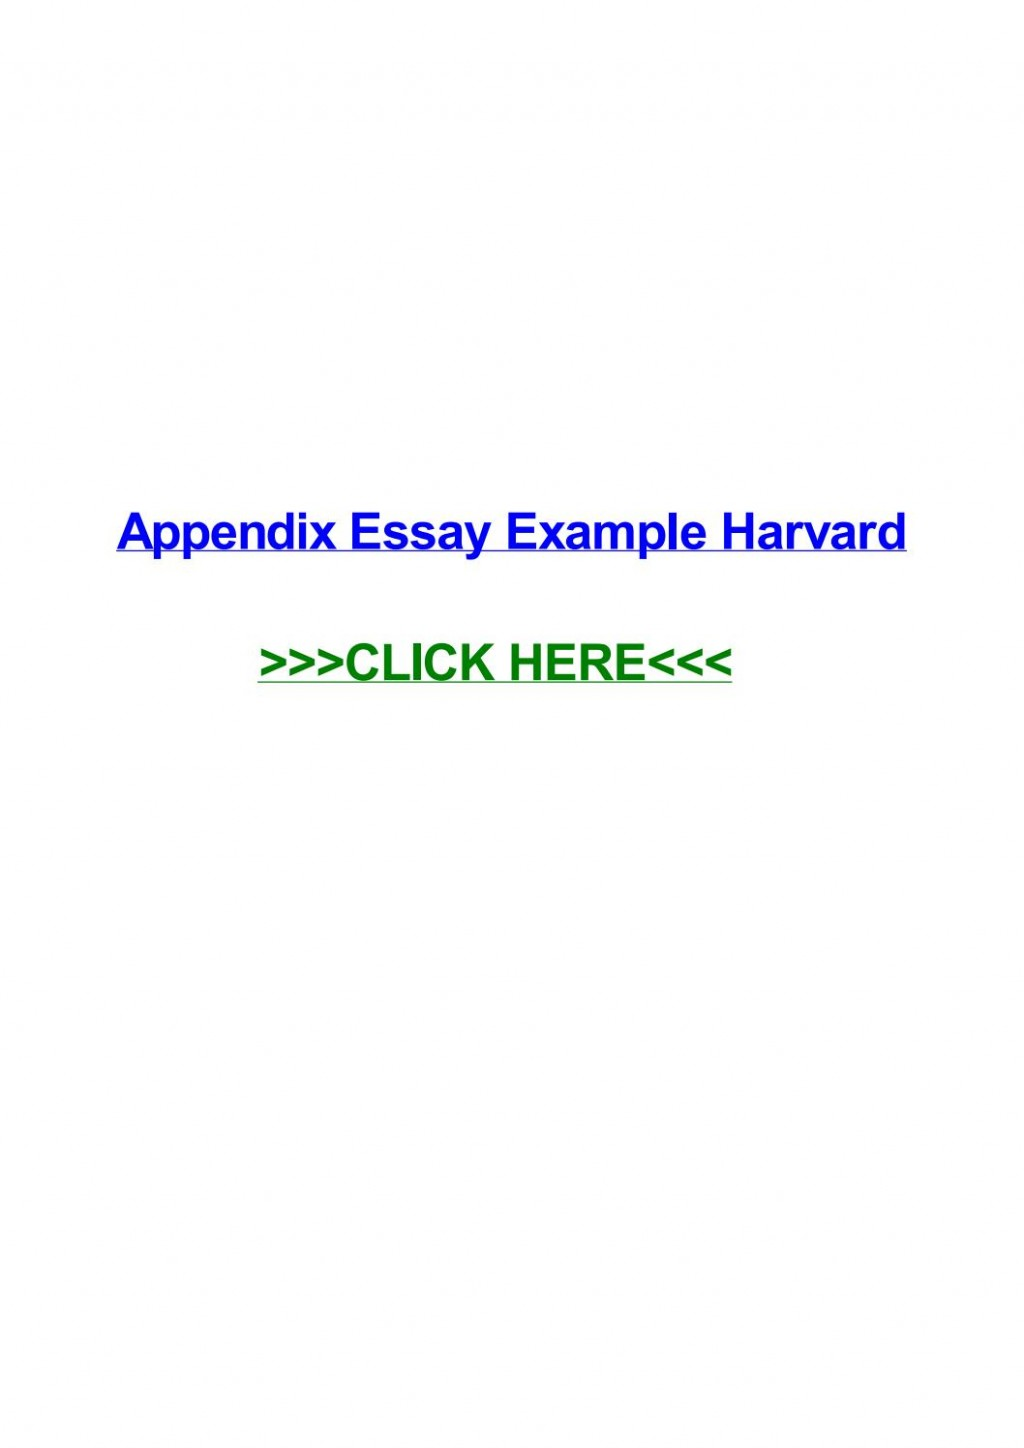 010 Appendices Example In Research Paper Harvard Style Page 1 Excellent Large